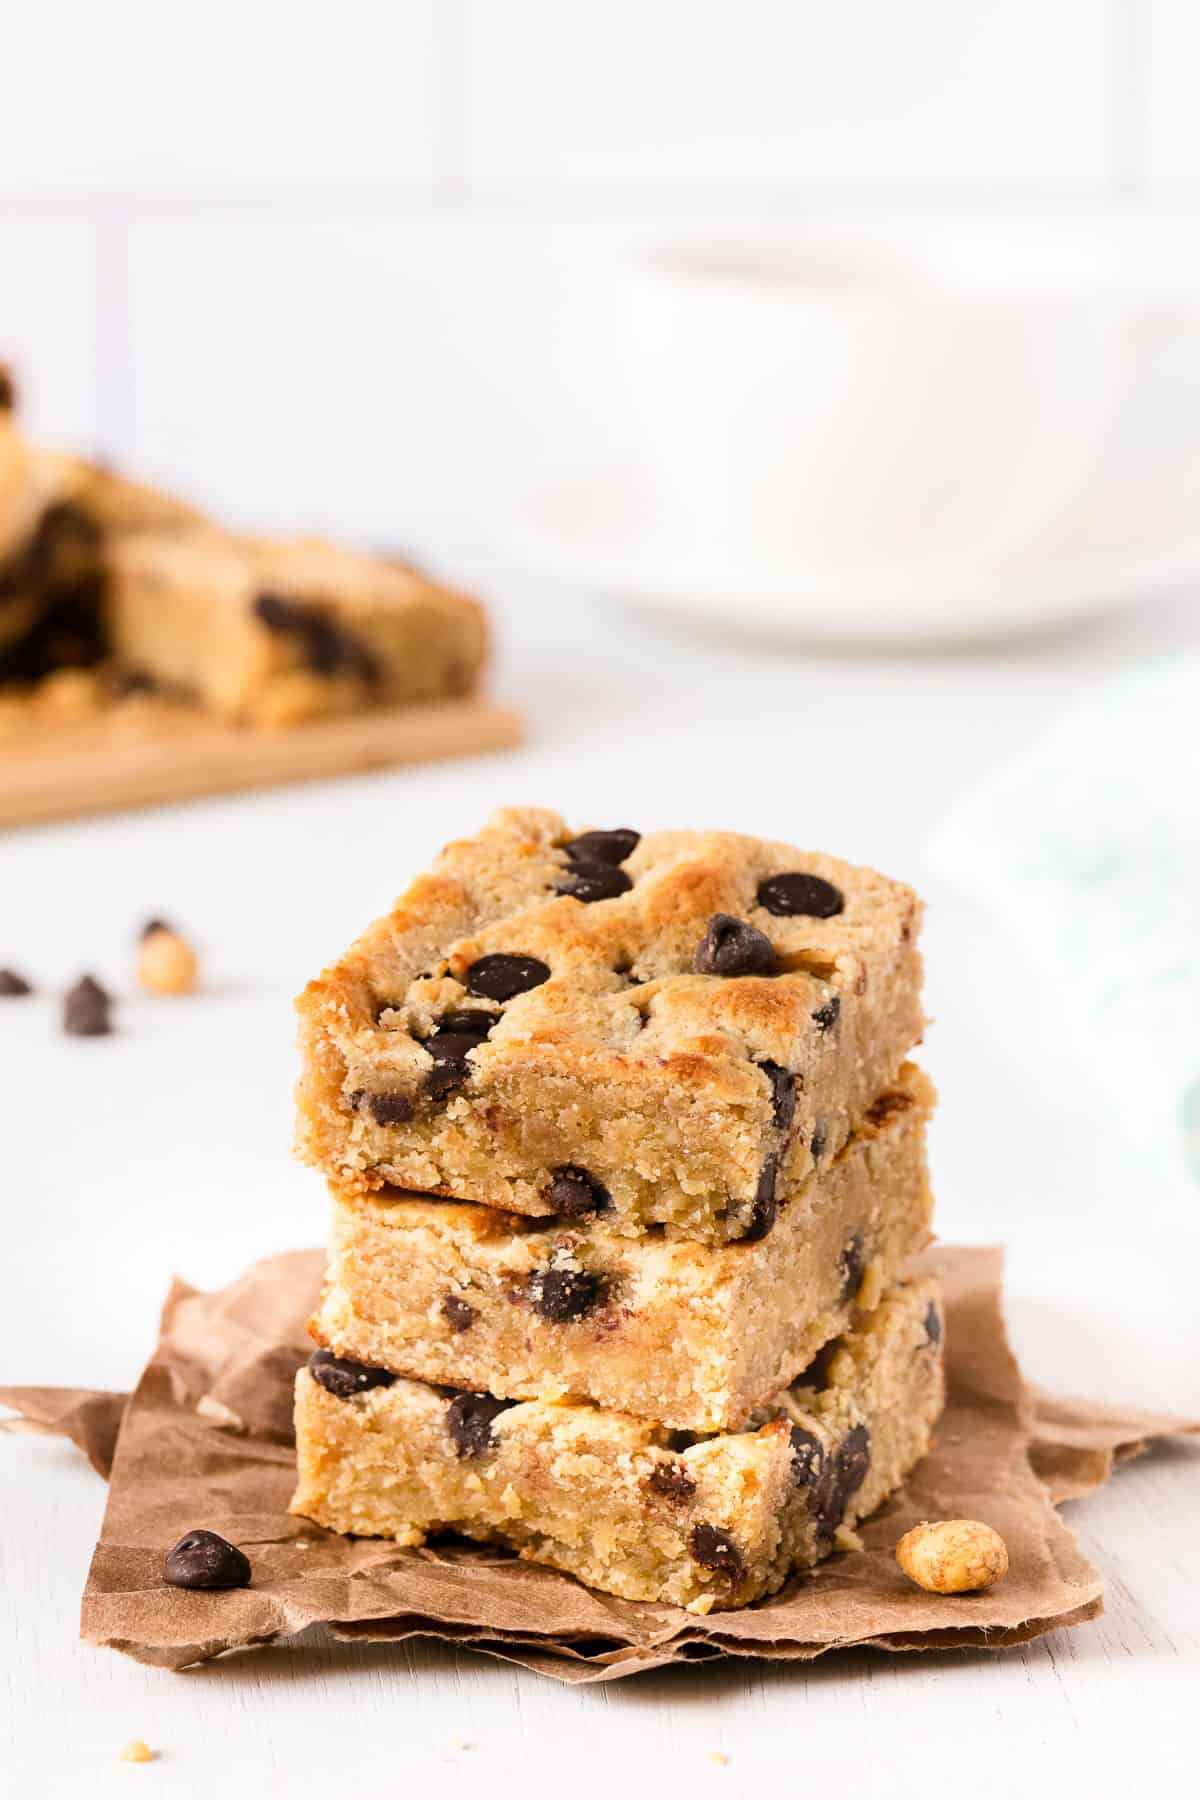 gluten free cookie bars stacked on top of each other on parchment paper, with a cup of coffee in the background